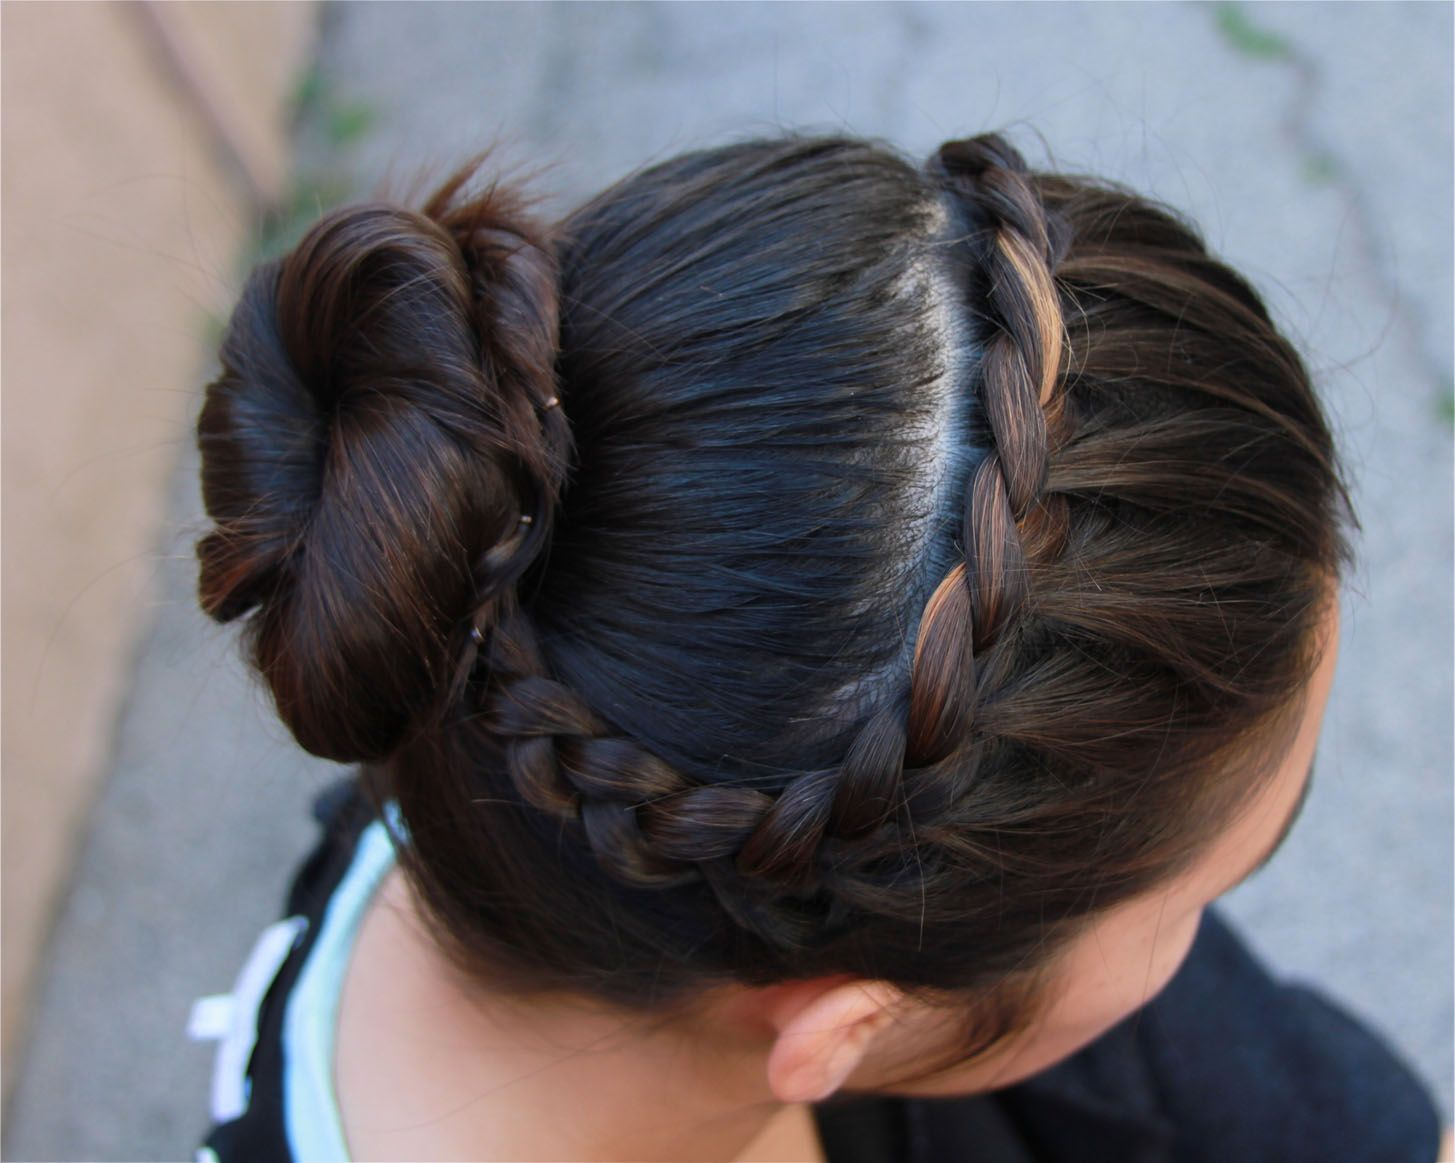 Awe Inspiring French Braid Styles French Braids And Cute Braided Hairstyles On Short Hairstyles For Black Women Fulllsitofus